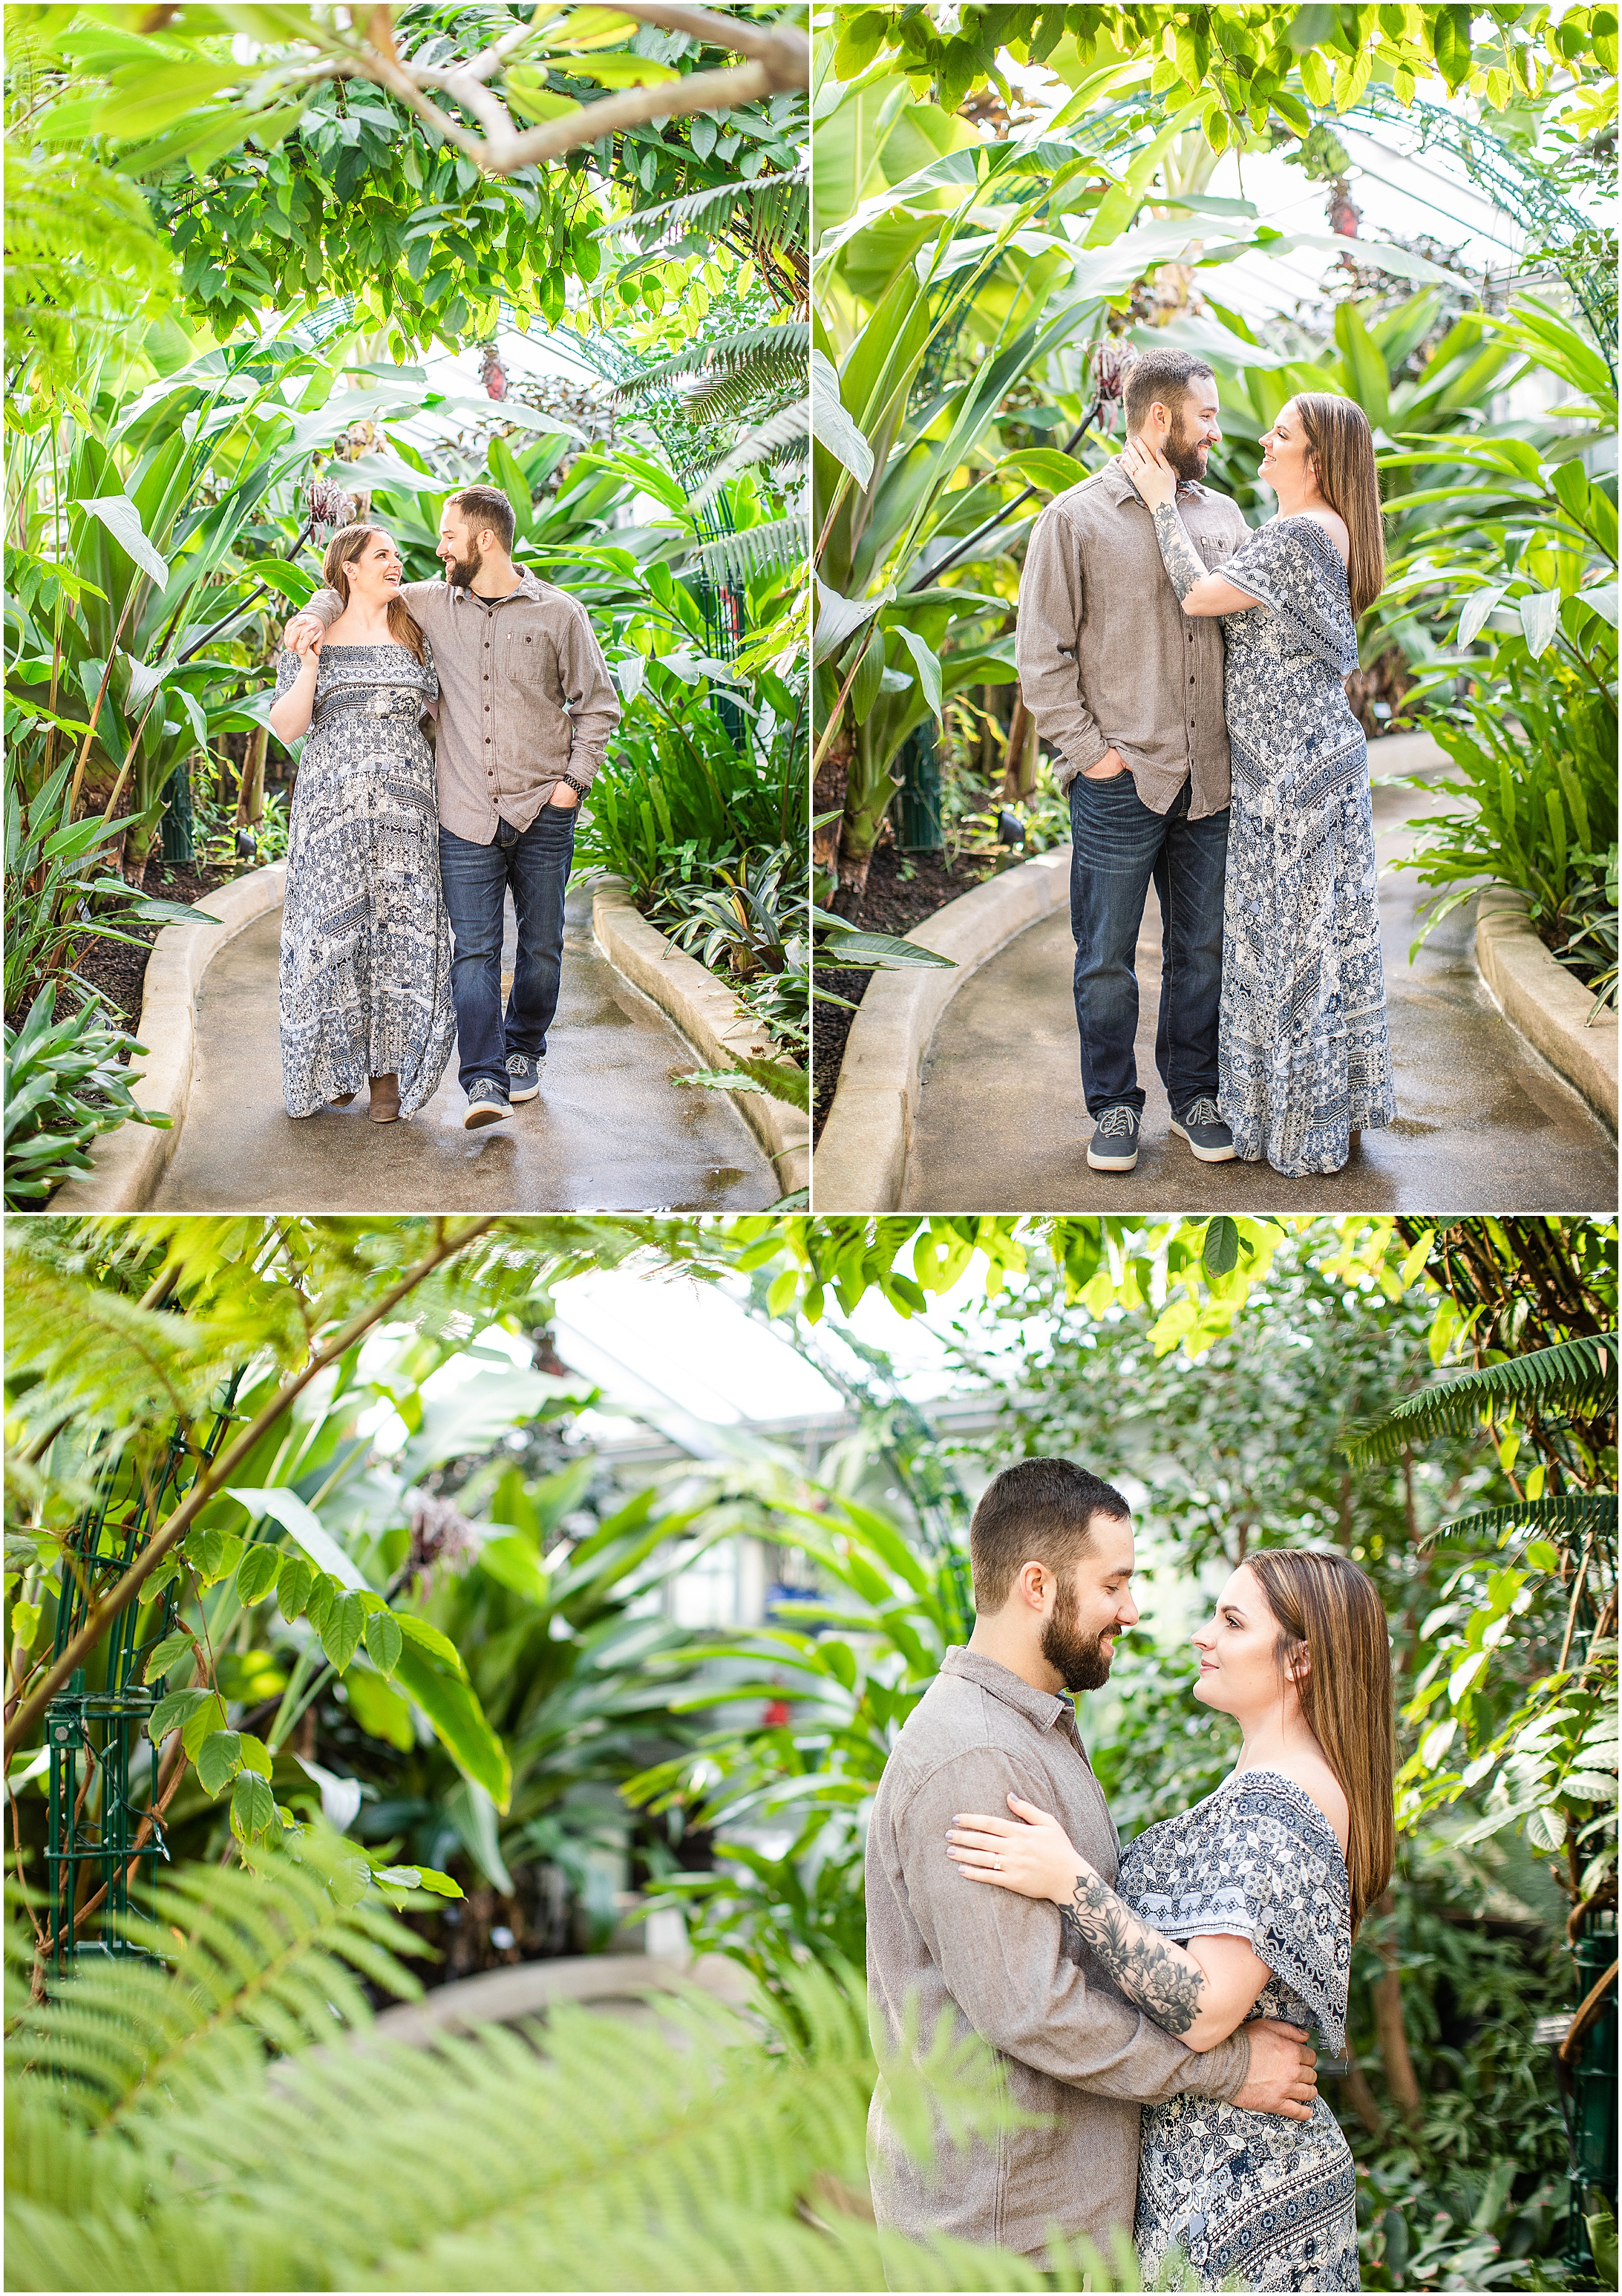 Rawlings-Conservatory-Engagement-Photos_0284.jpg